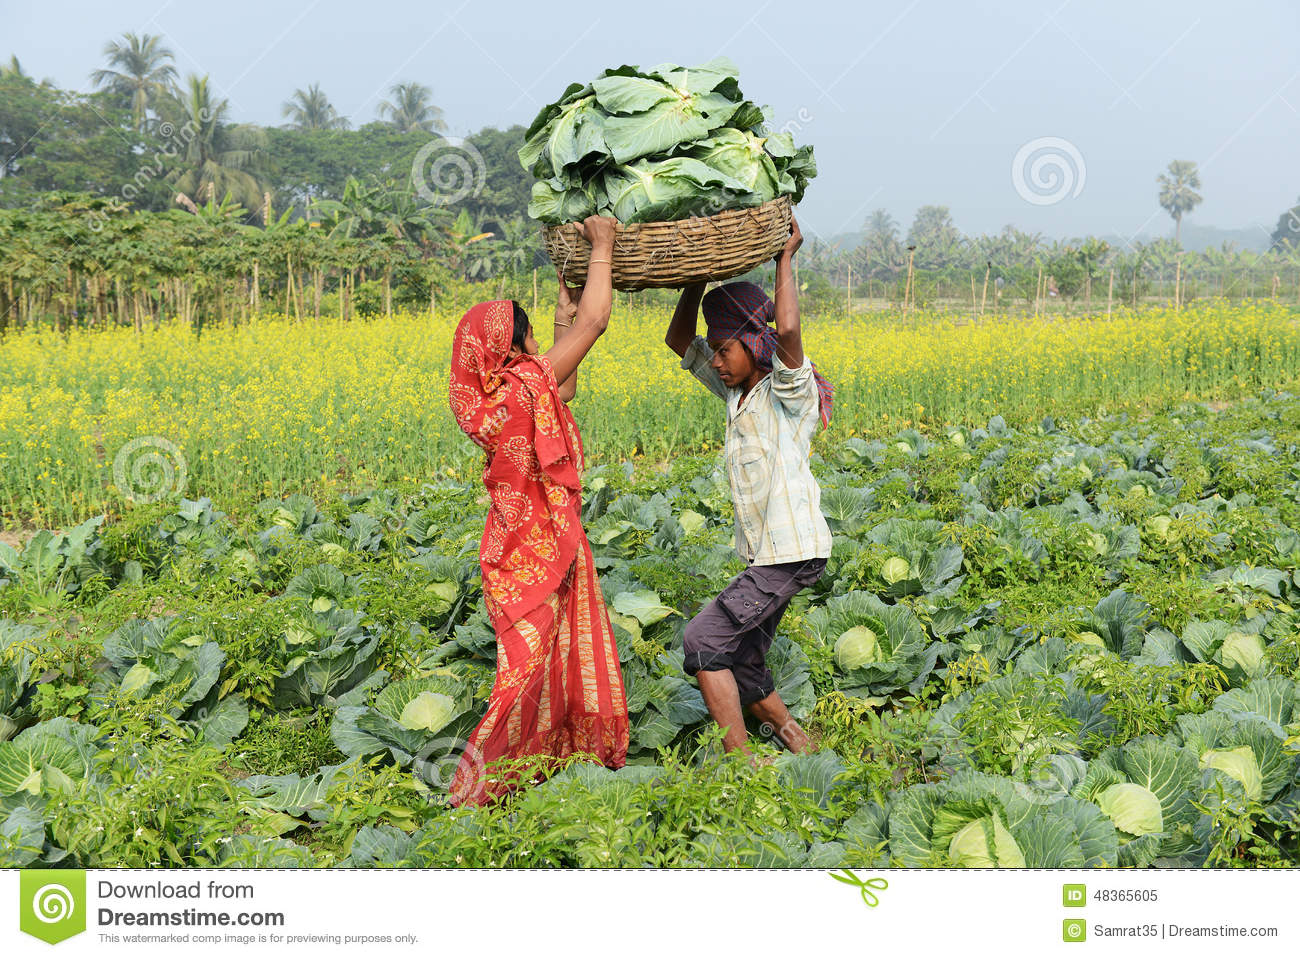 agriculture to shape in india News on indian agriculture, food processing, crops production, agri policy, trade in agriculture, farming, news on crop pricing and agri industry.